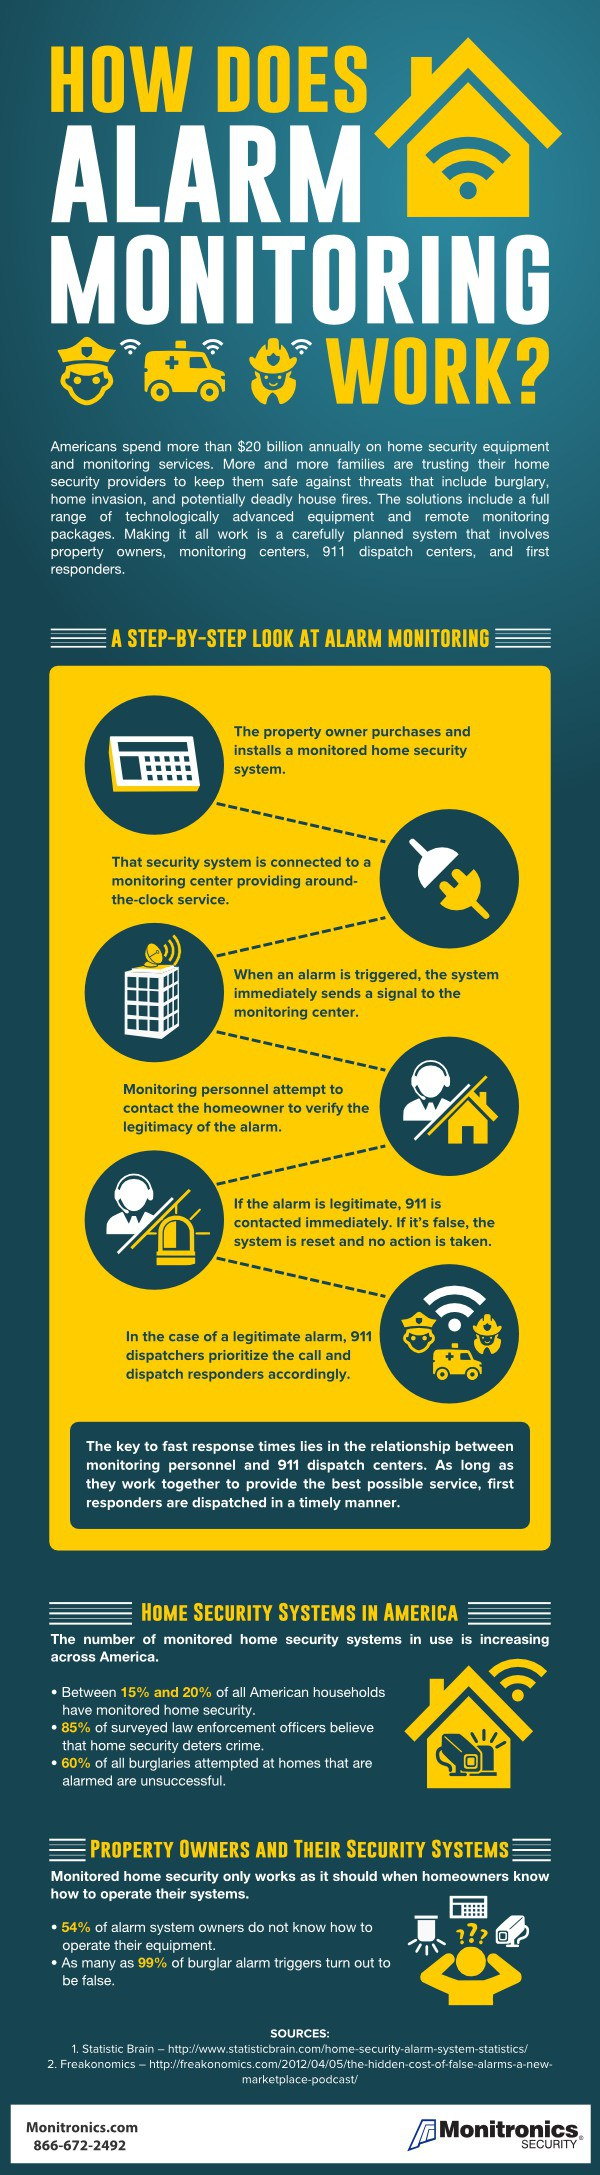 How-does-alarm-monitoring-work-infographic